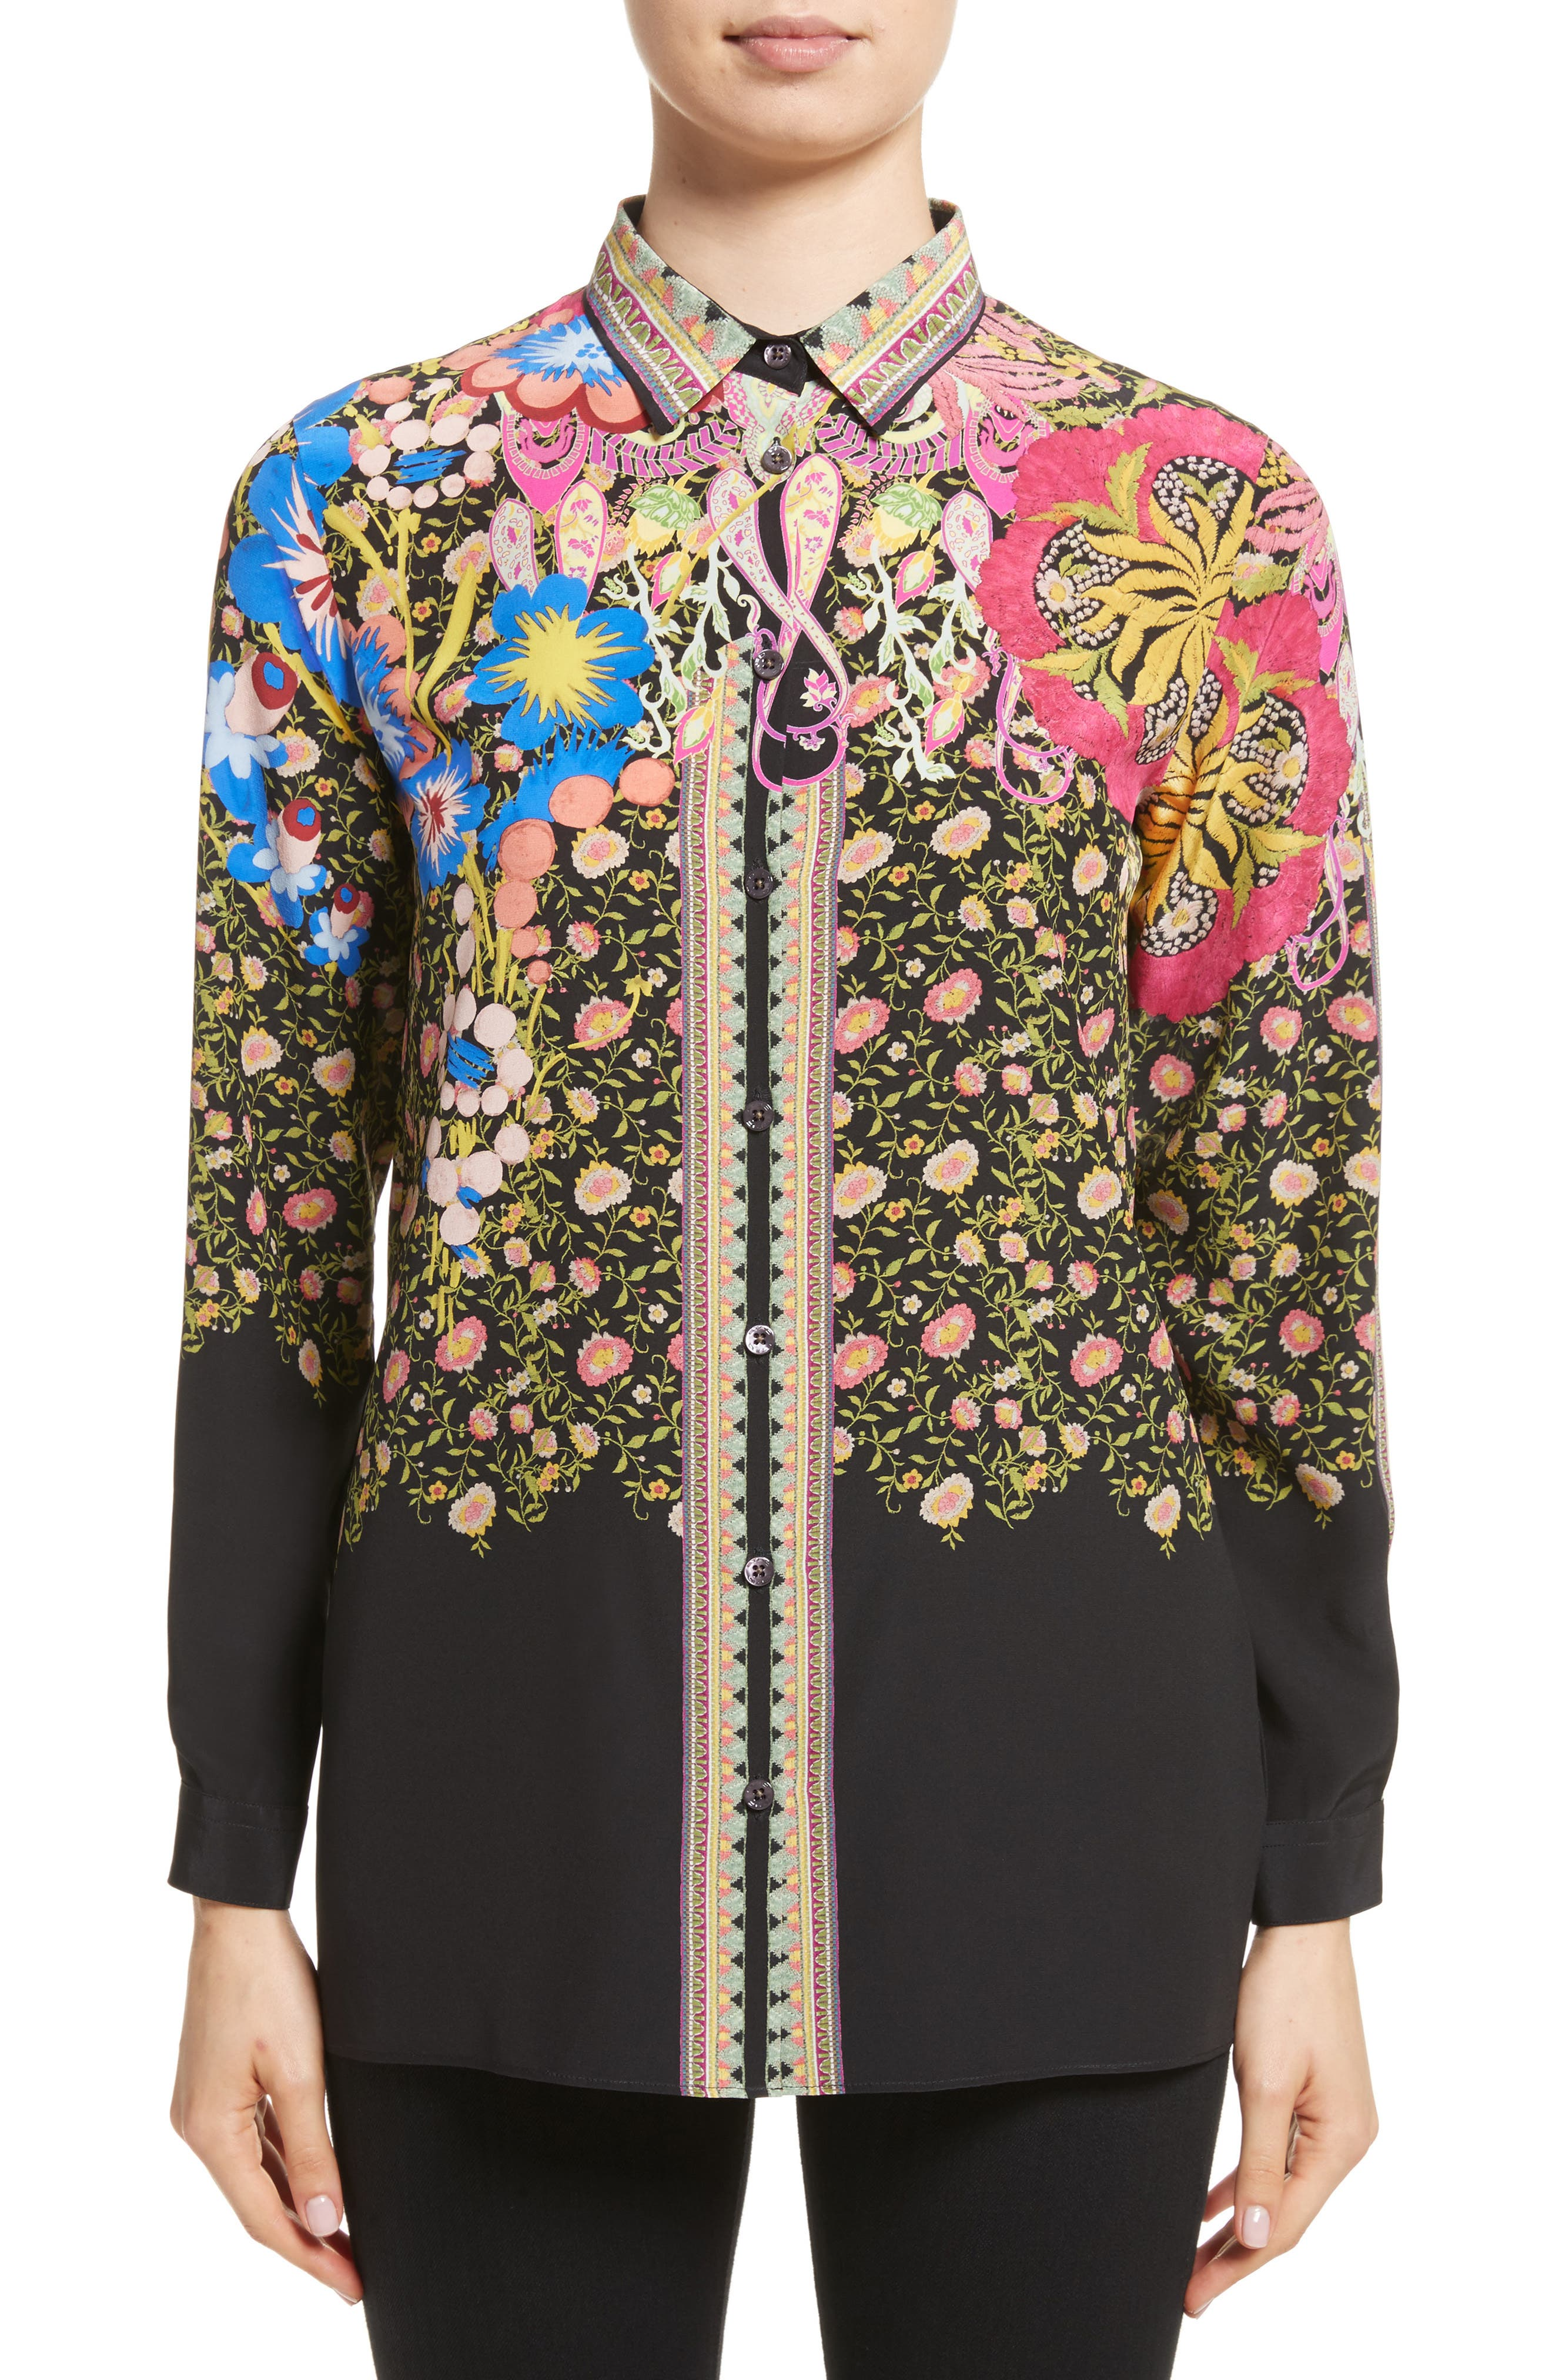 Alternate Image 1 Selected - Etro Floral Paisley Print Silk Shirt